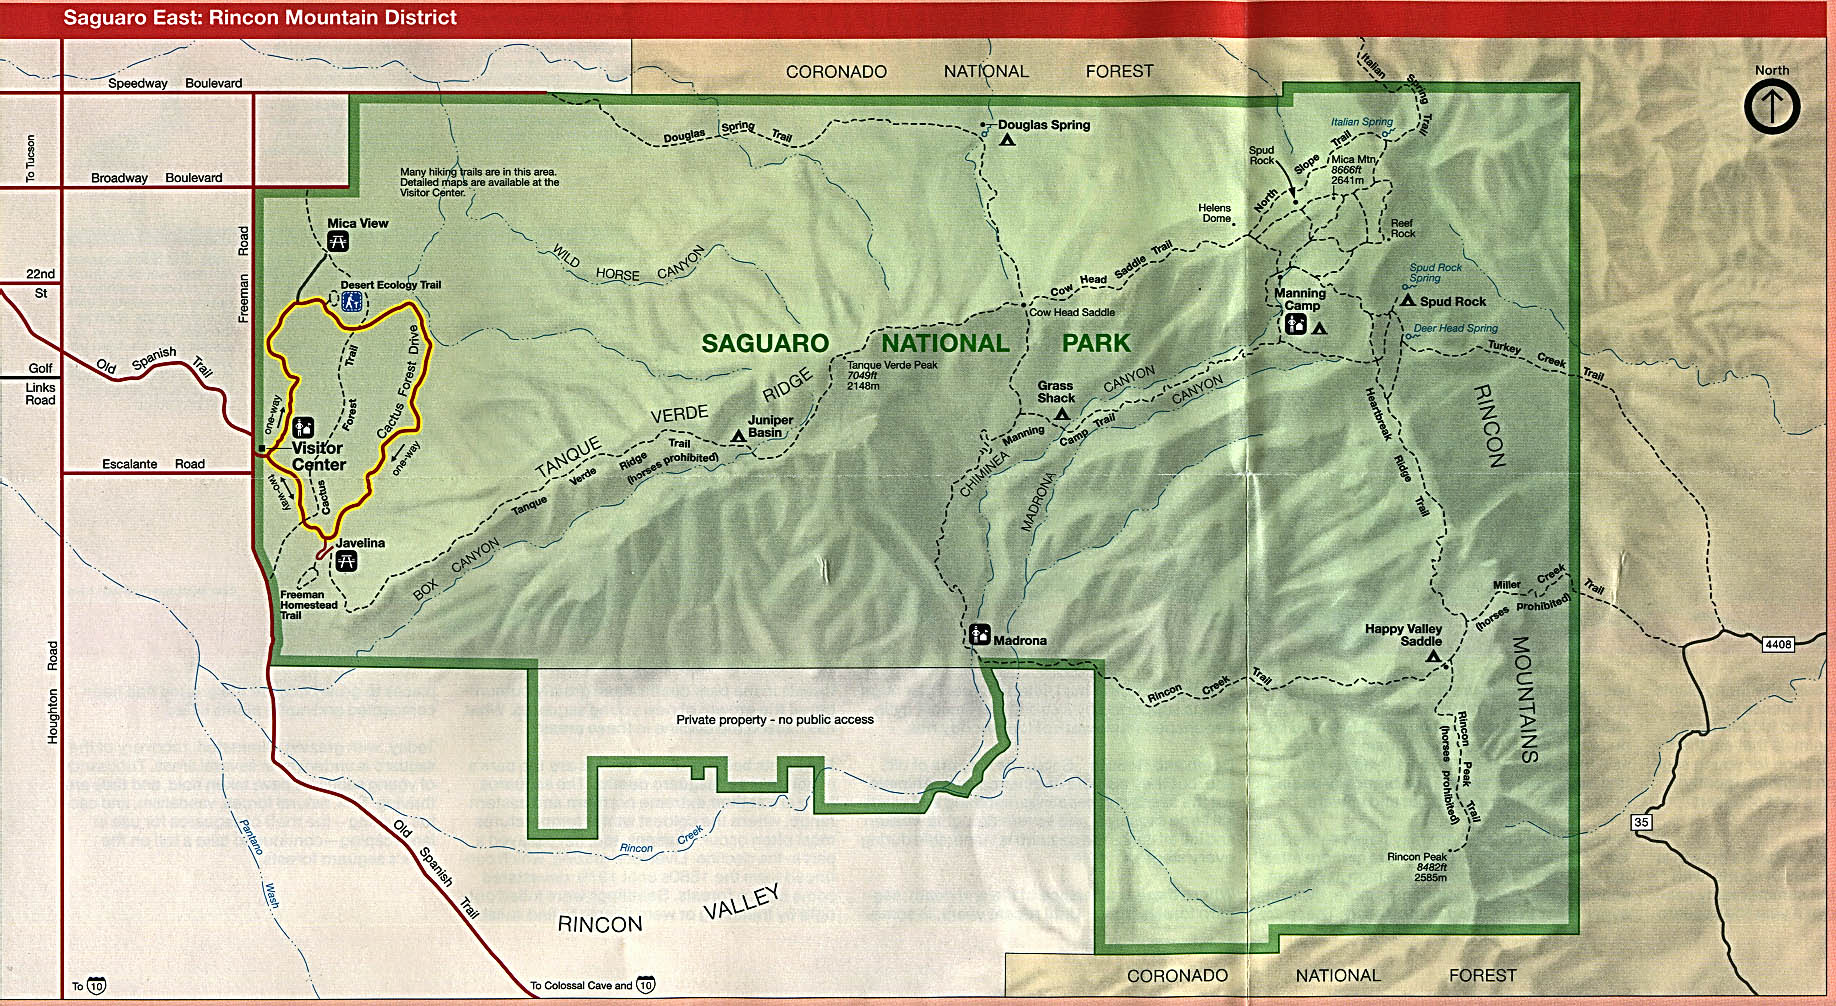 Eastern Saguaro National Park Map, Rincon Mountain District, Arizona, United States